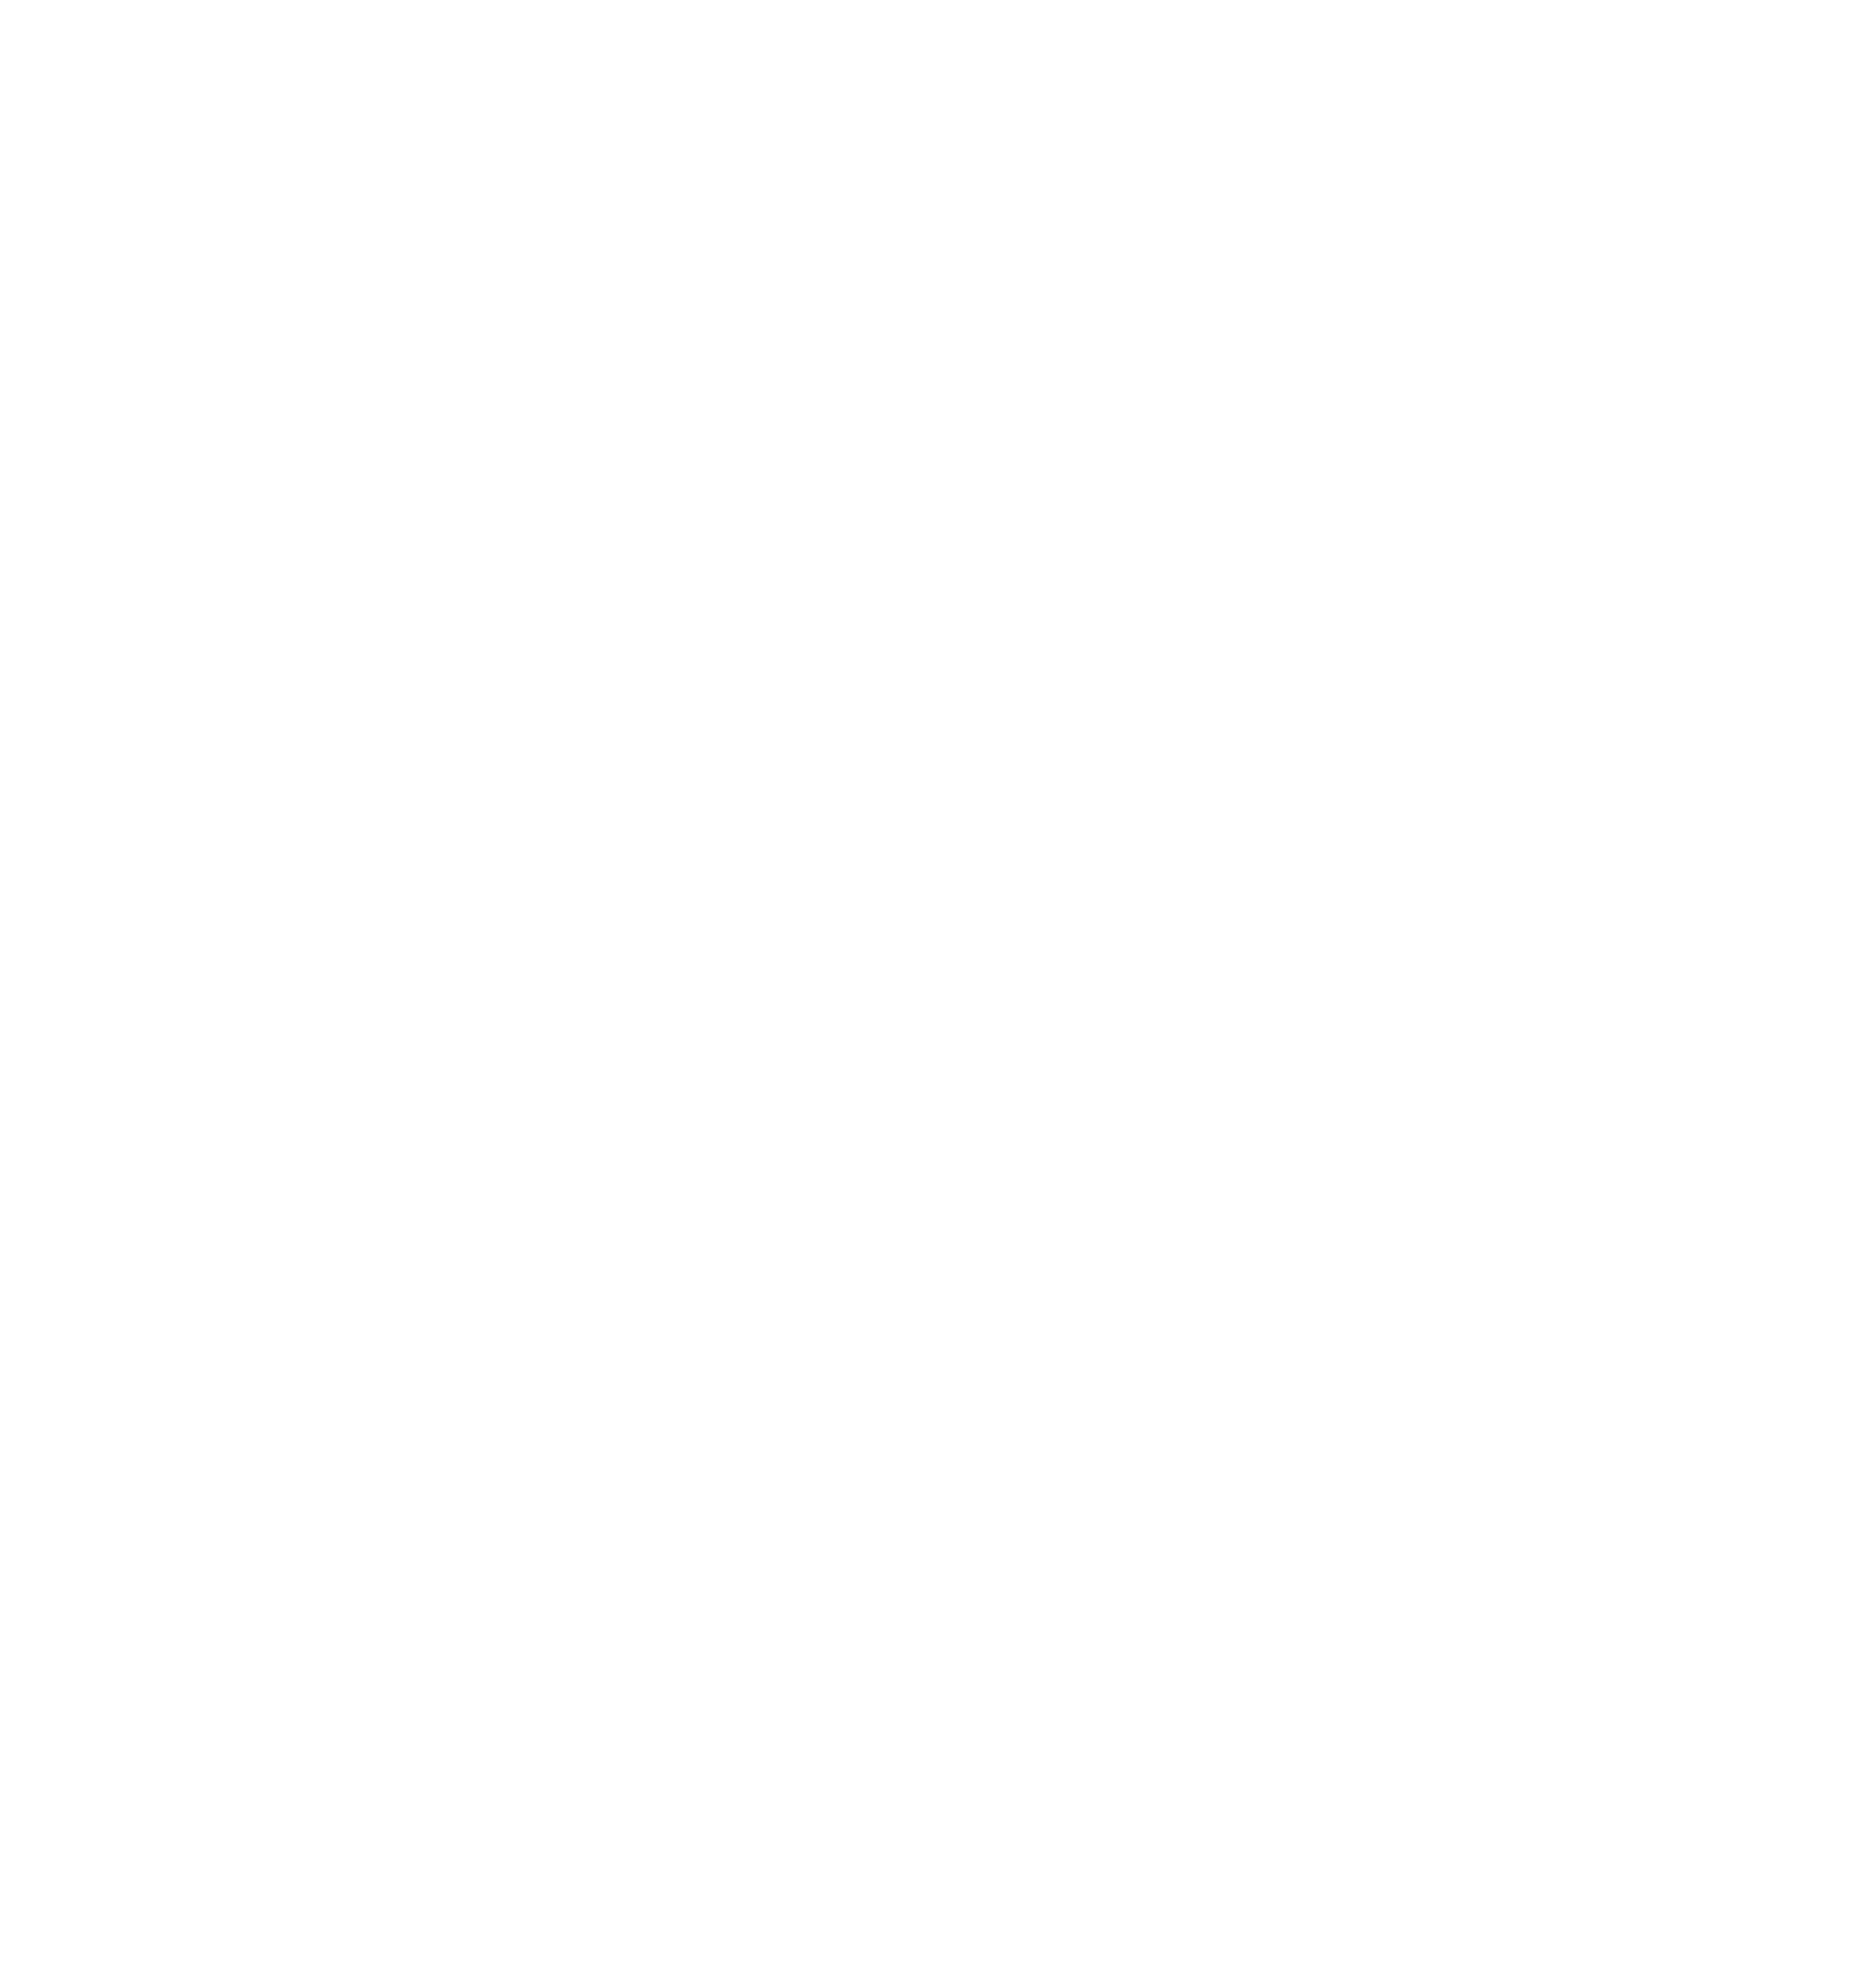 RR Hotels Group